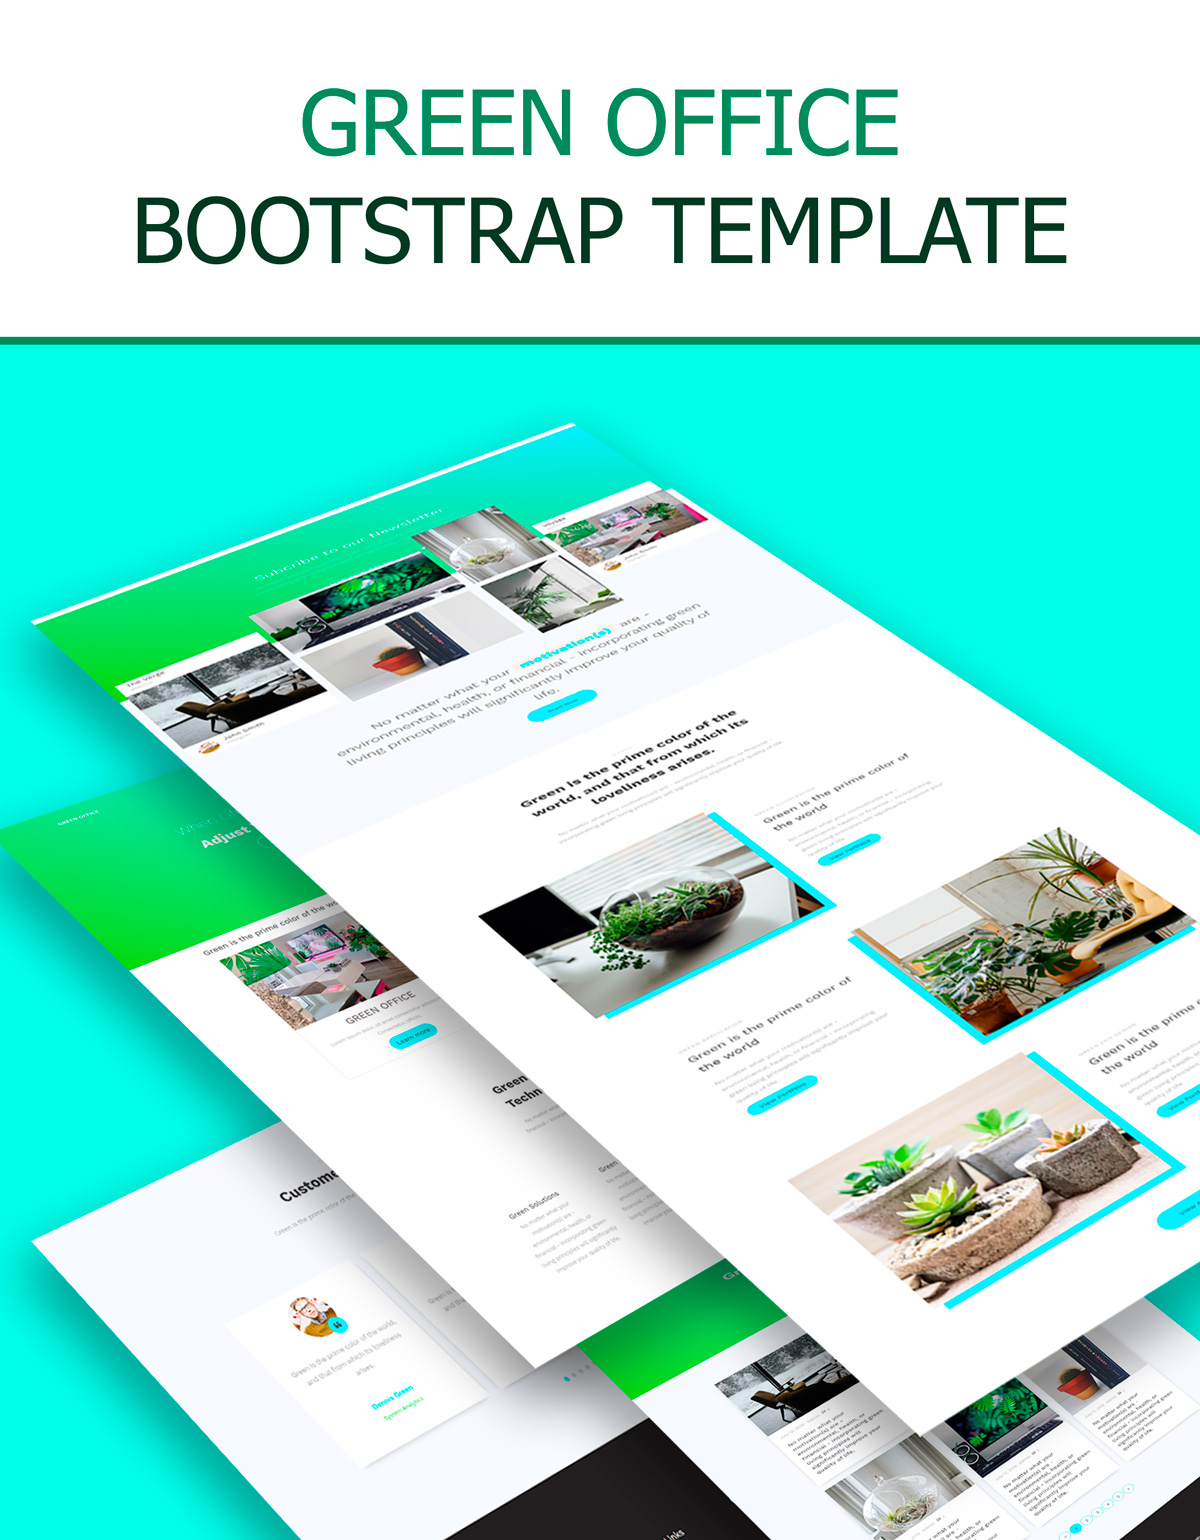 green-office-bootstrap-template